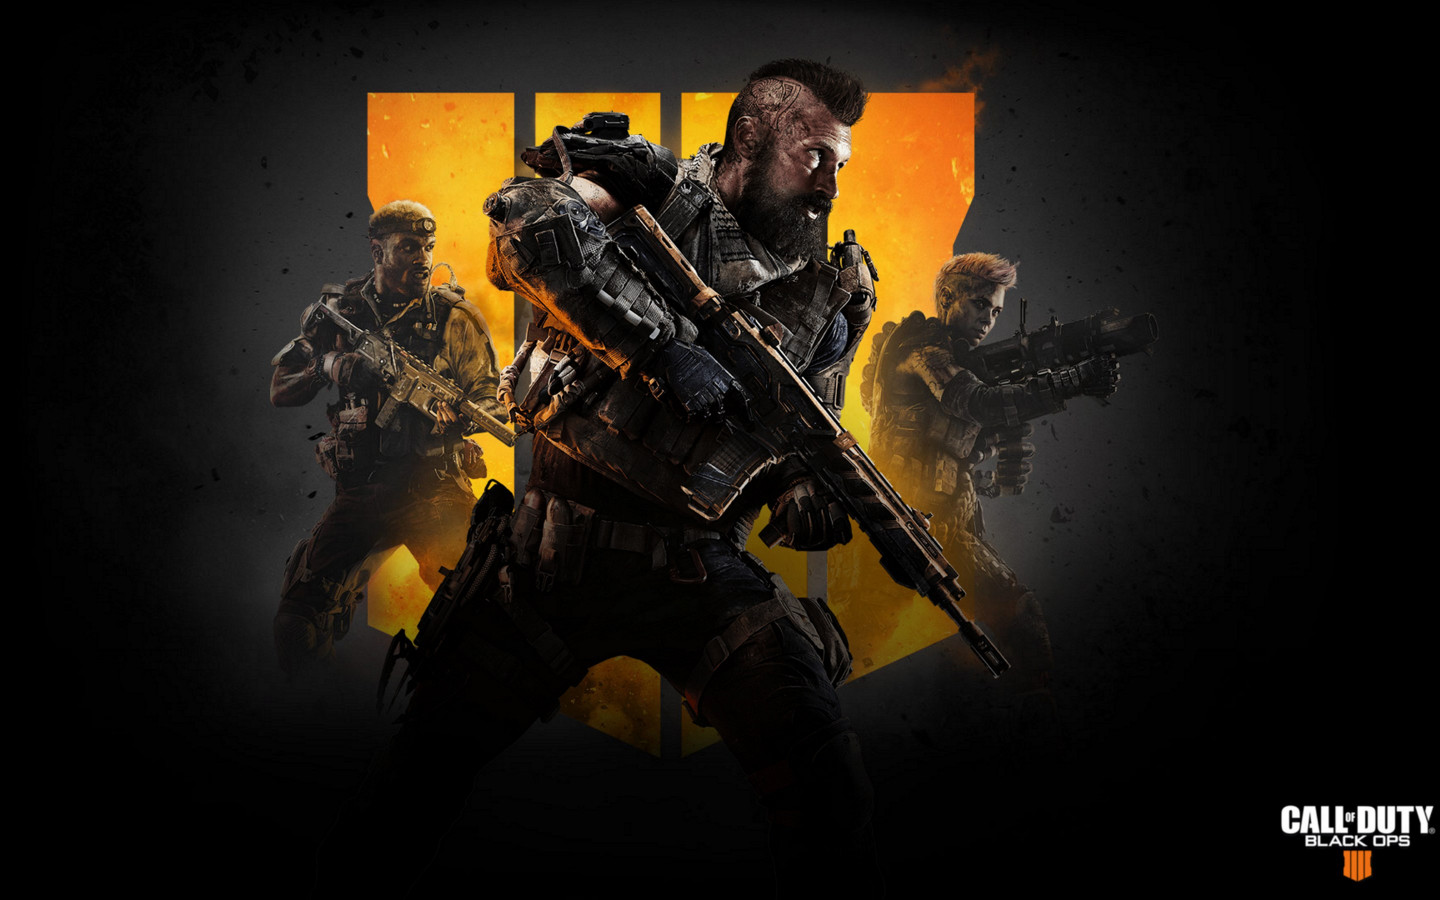 Call of Duty Black Ops 4 wallpaper 1440x900